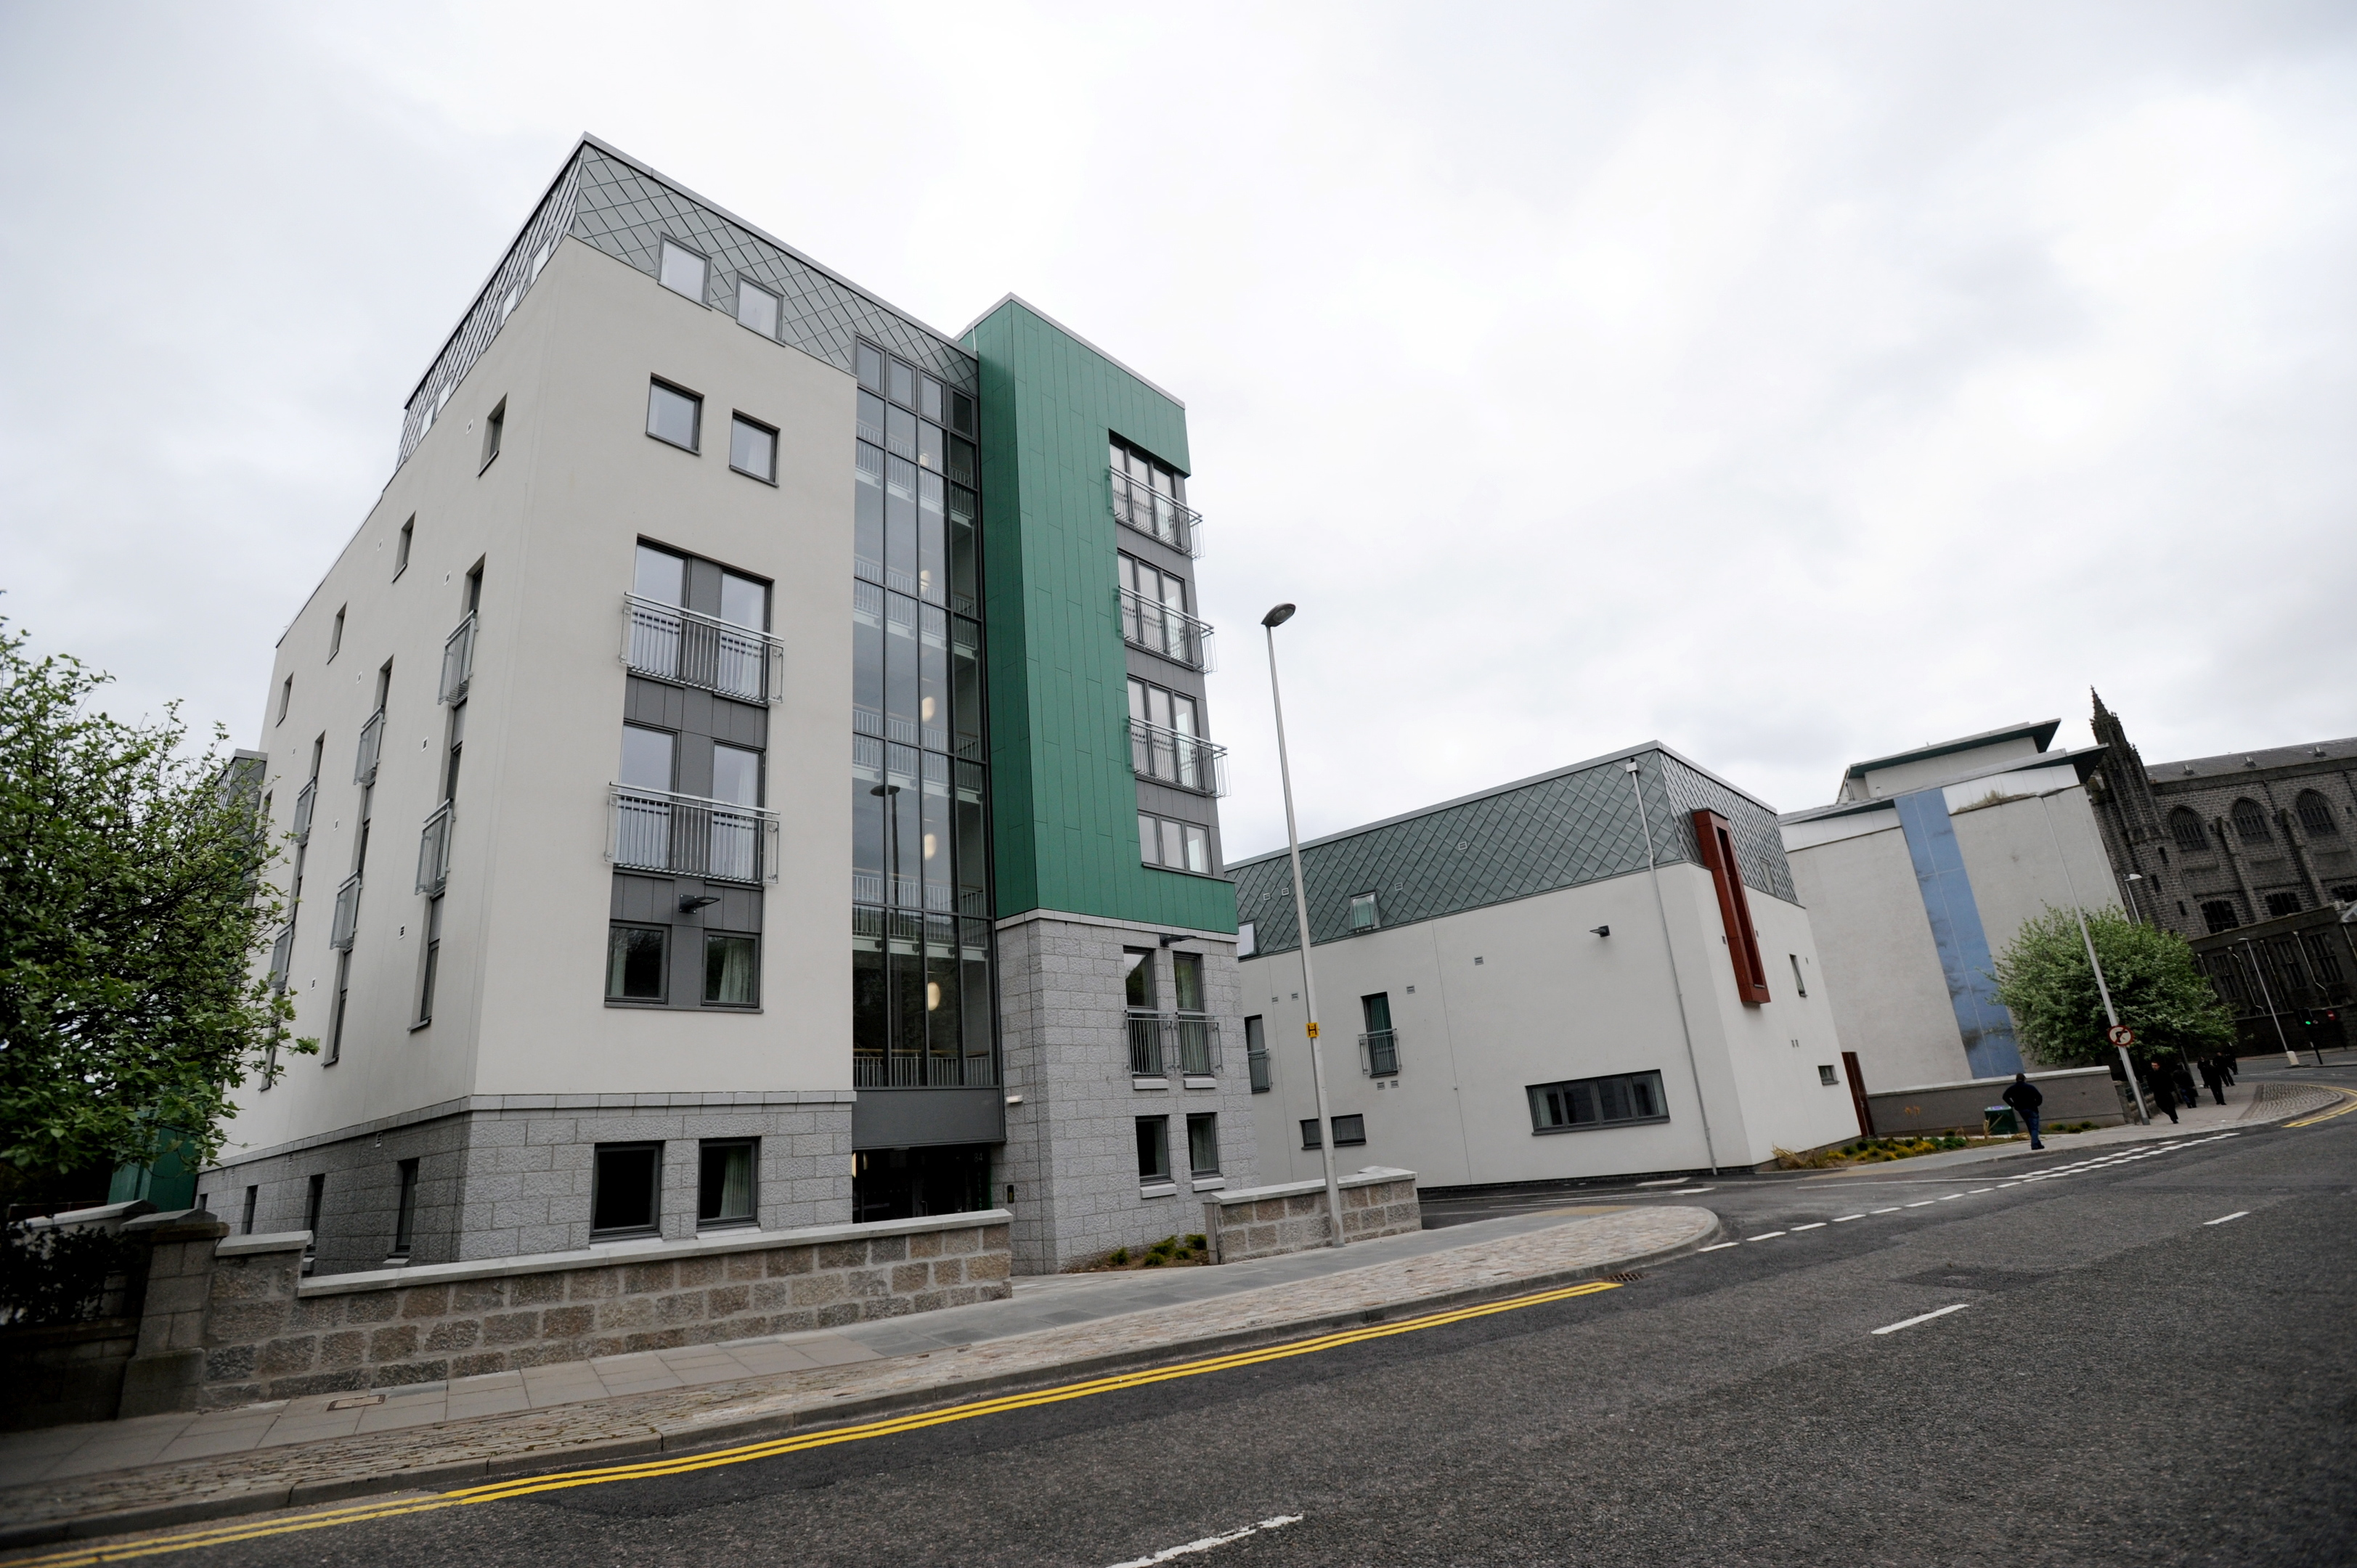 Cllr Neil Cooney would like to see more accommodation like Victoria House, a homeless and support facility on West North Street.